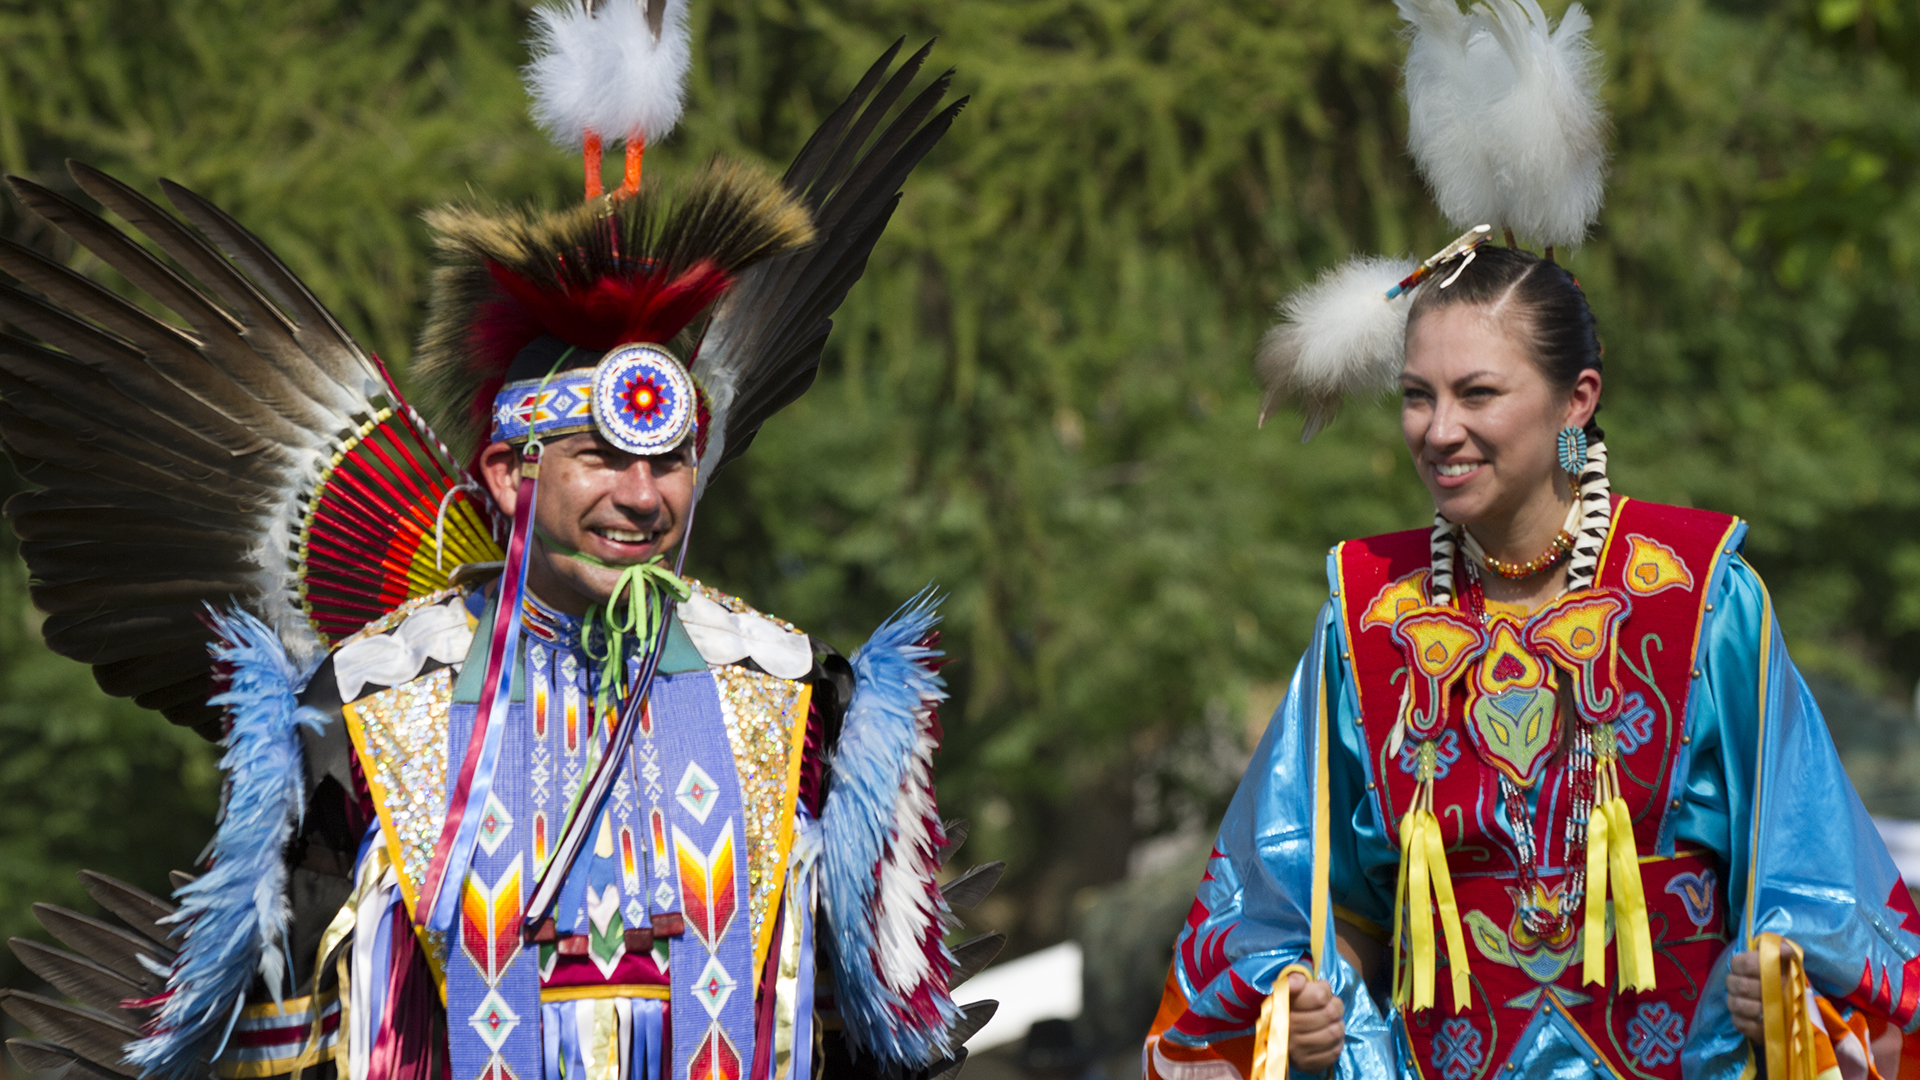 Midwest SOARRING Foundation's Native American Cultural